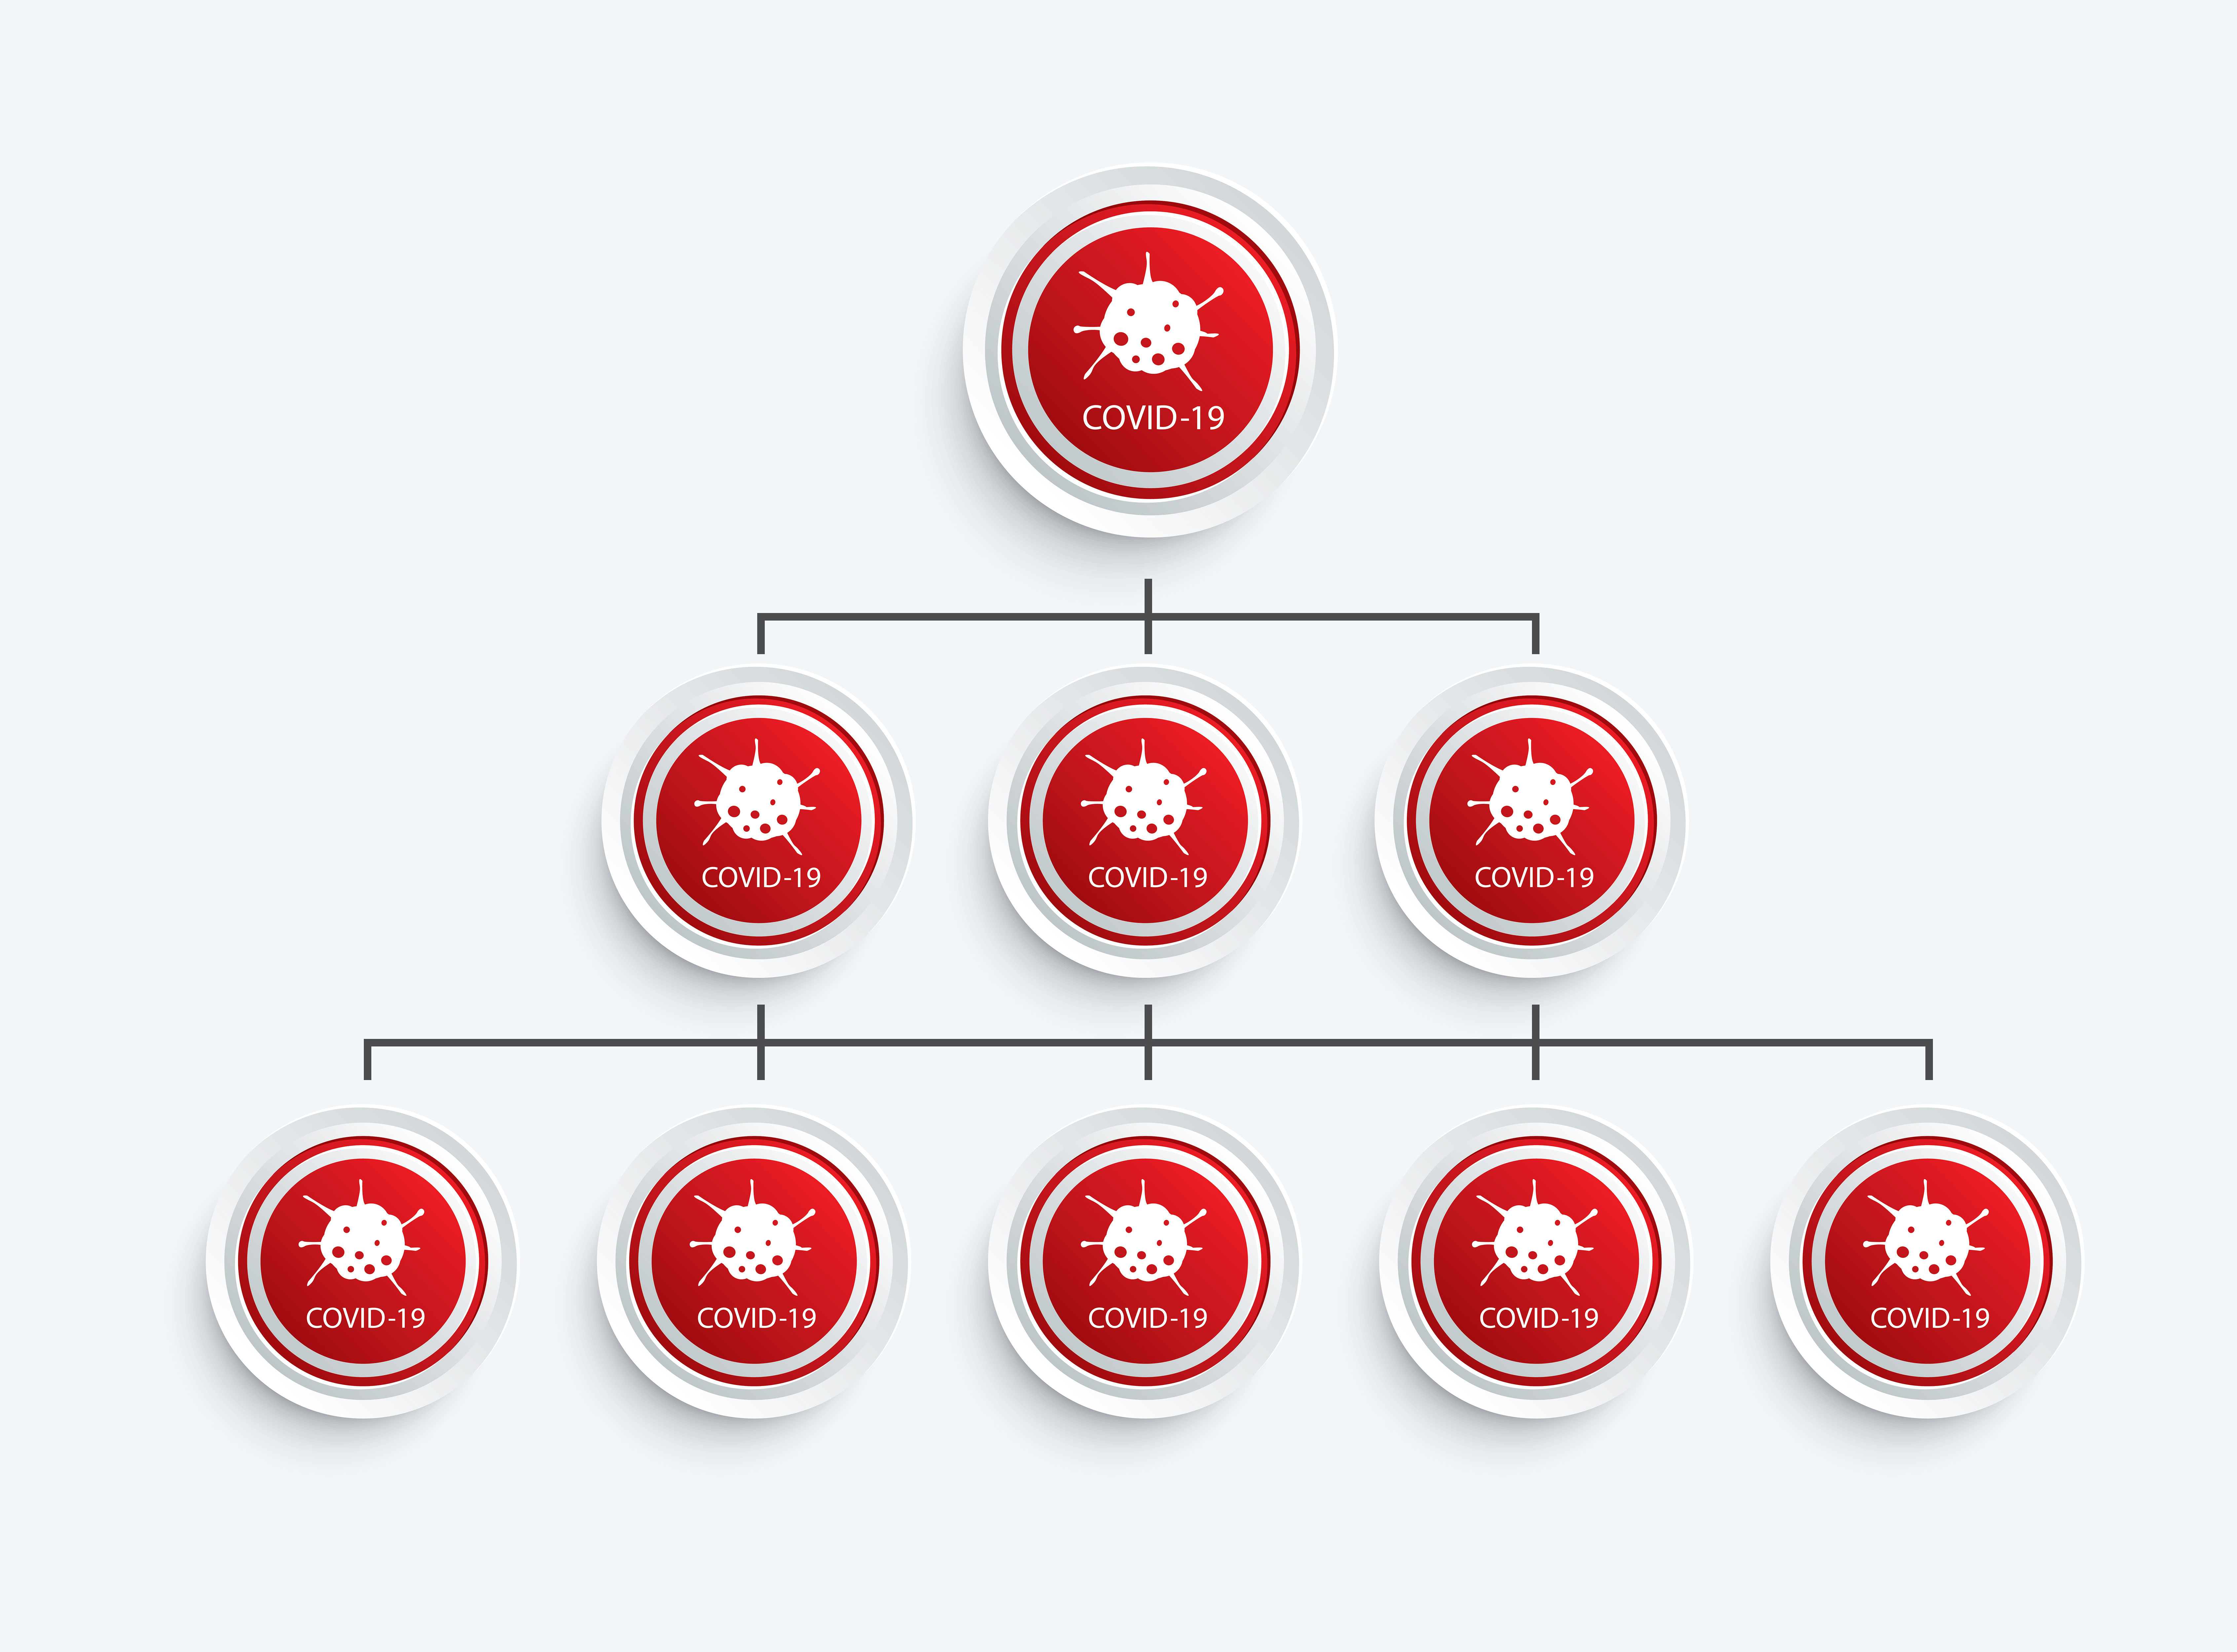 Hierarchy Chart For Virus Covid-19 Data